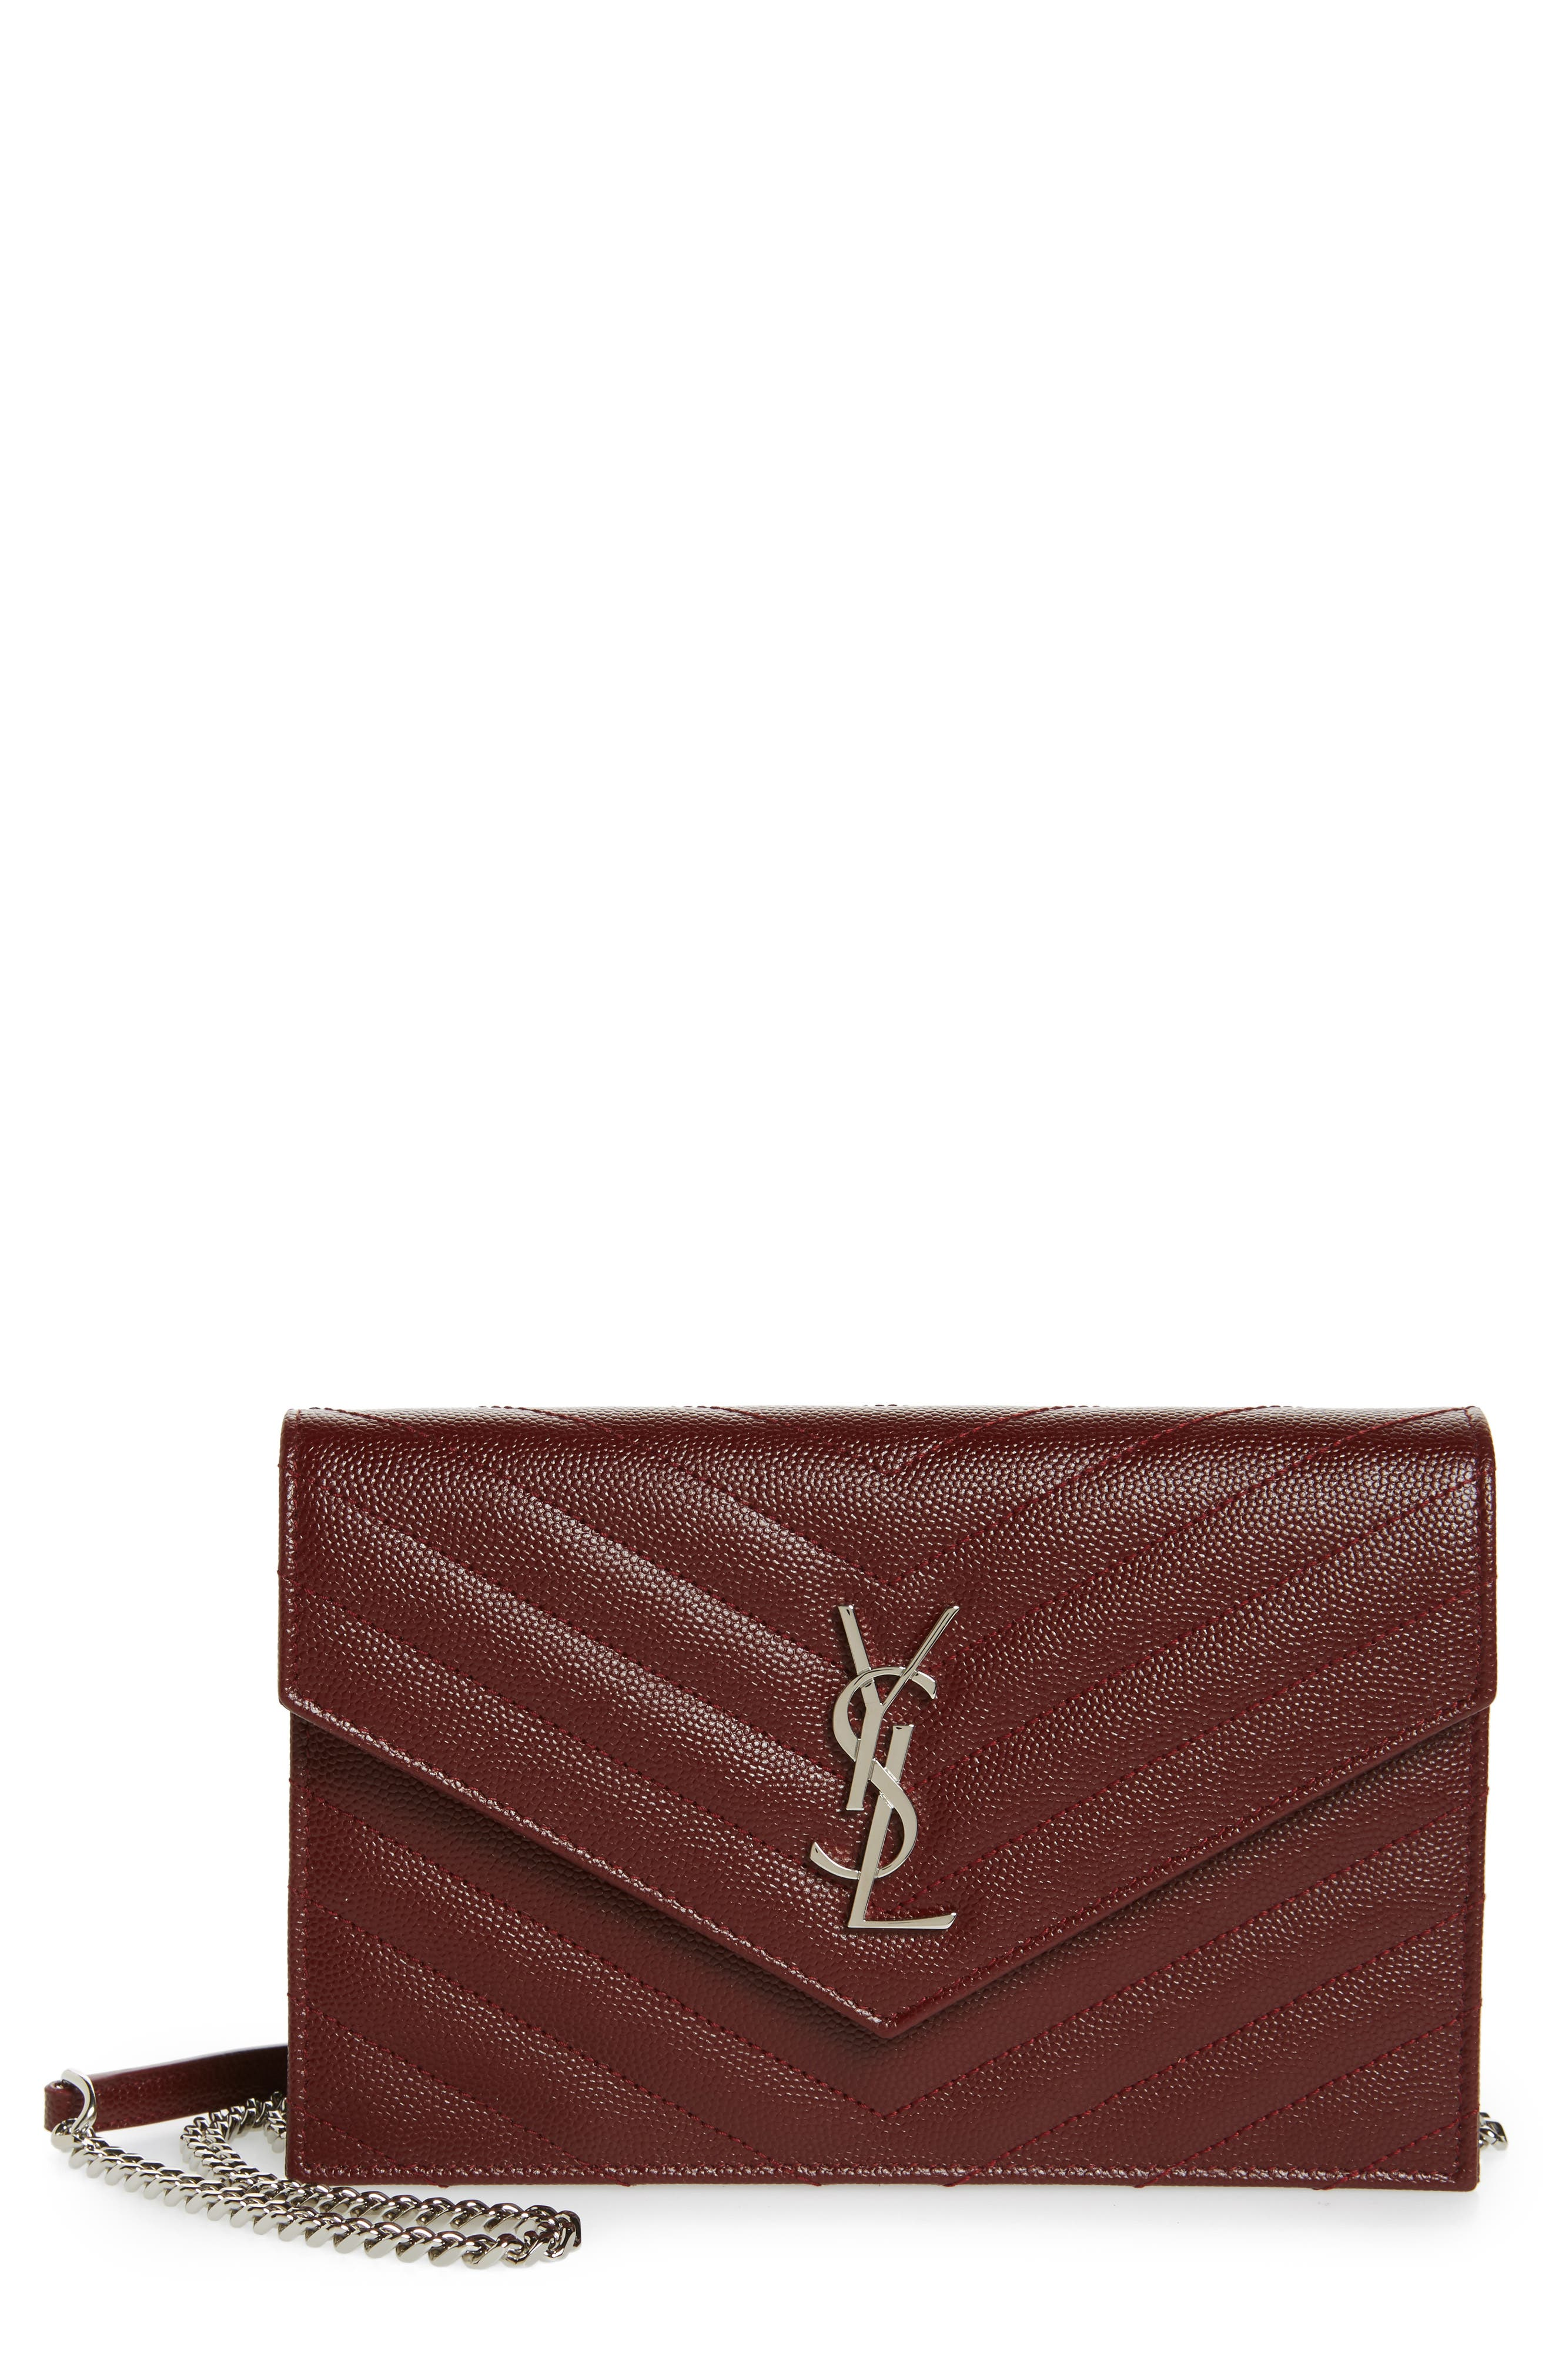 Quilted Calfskin Leather Wallet on a Chain,                         Main,                         color, Bordeaux